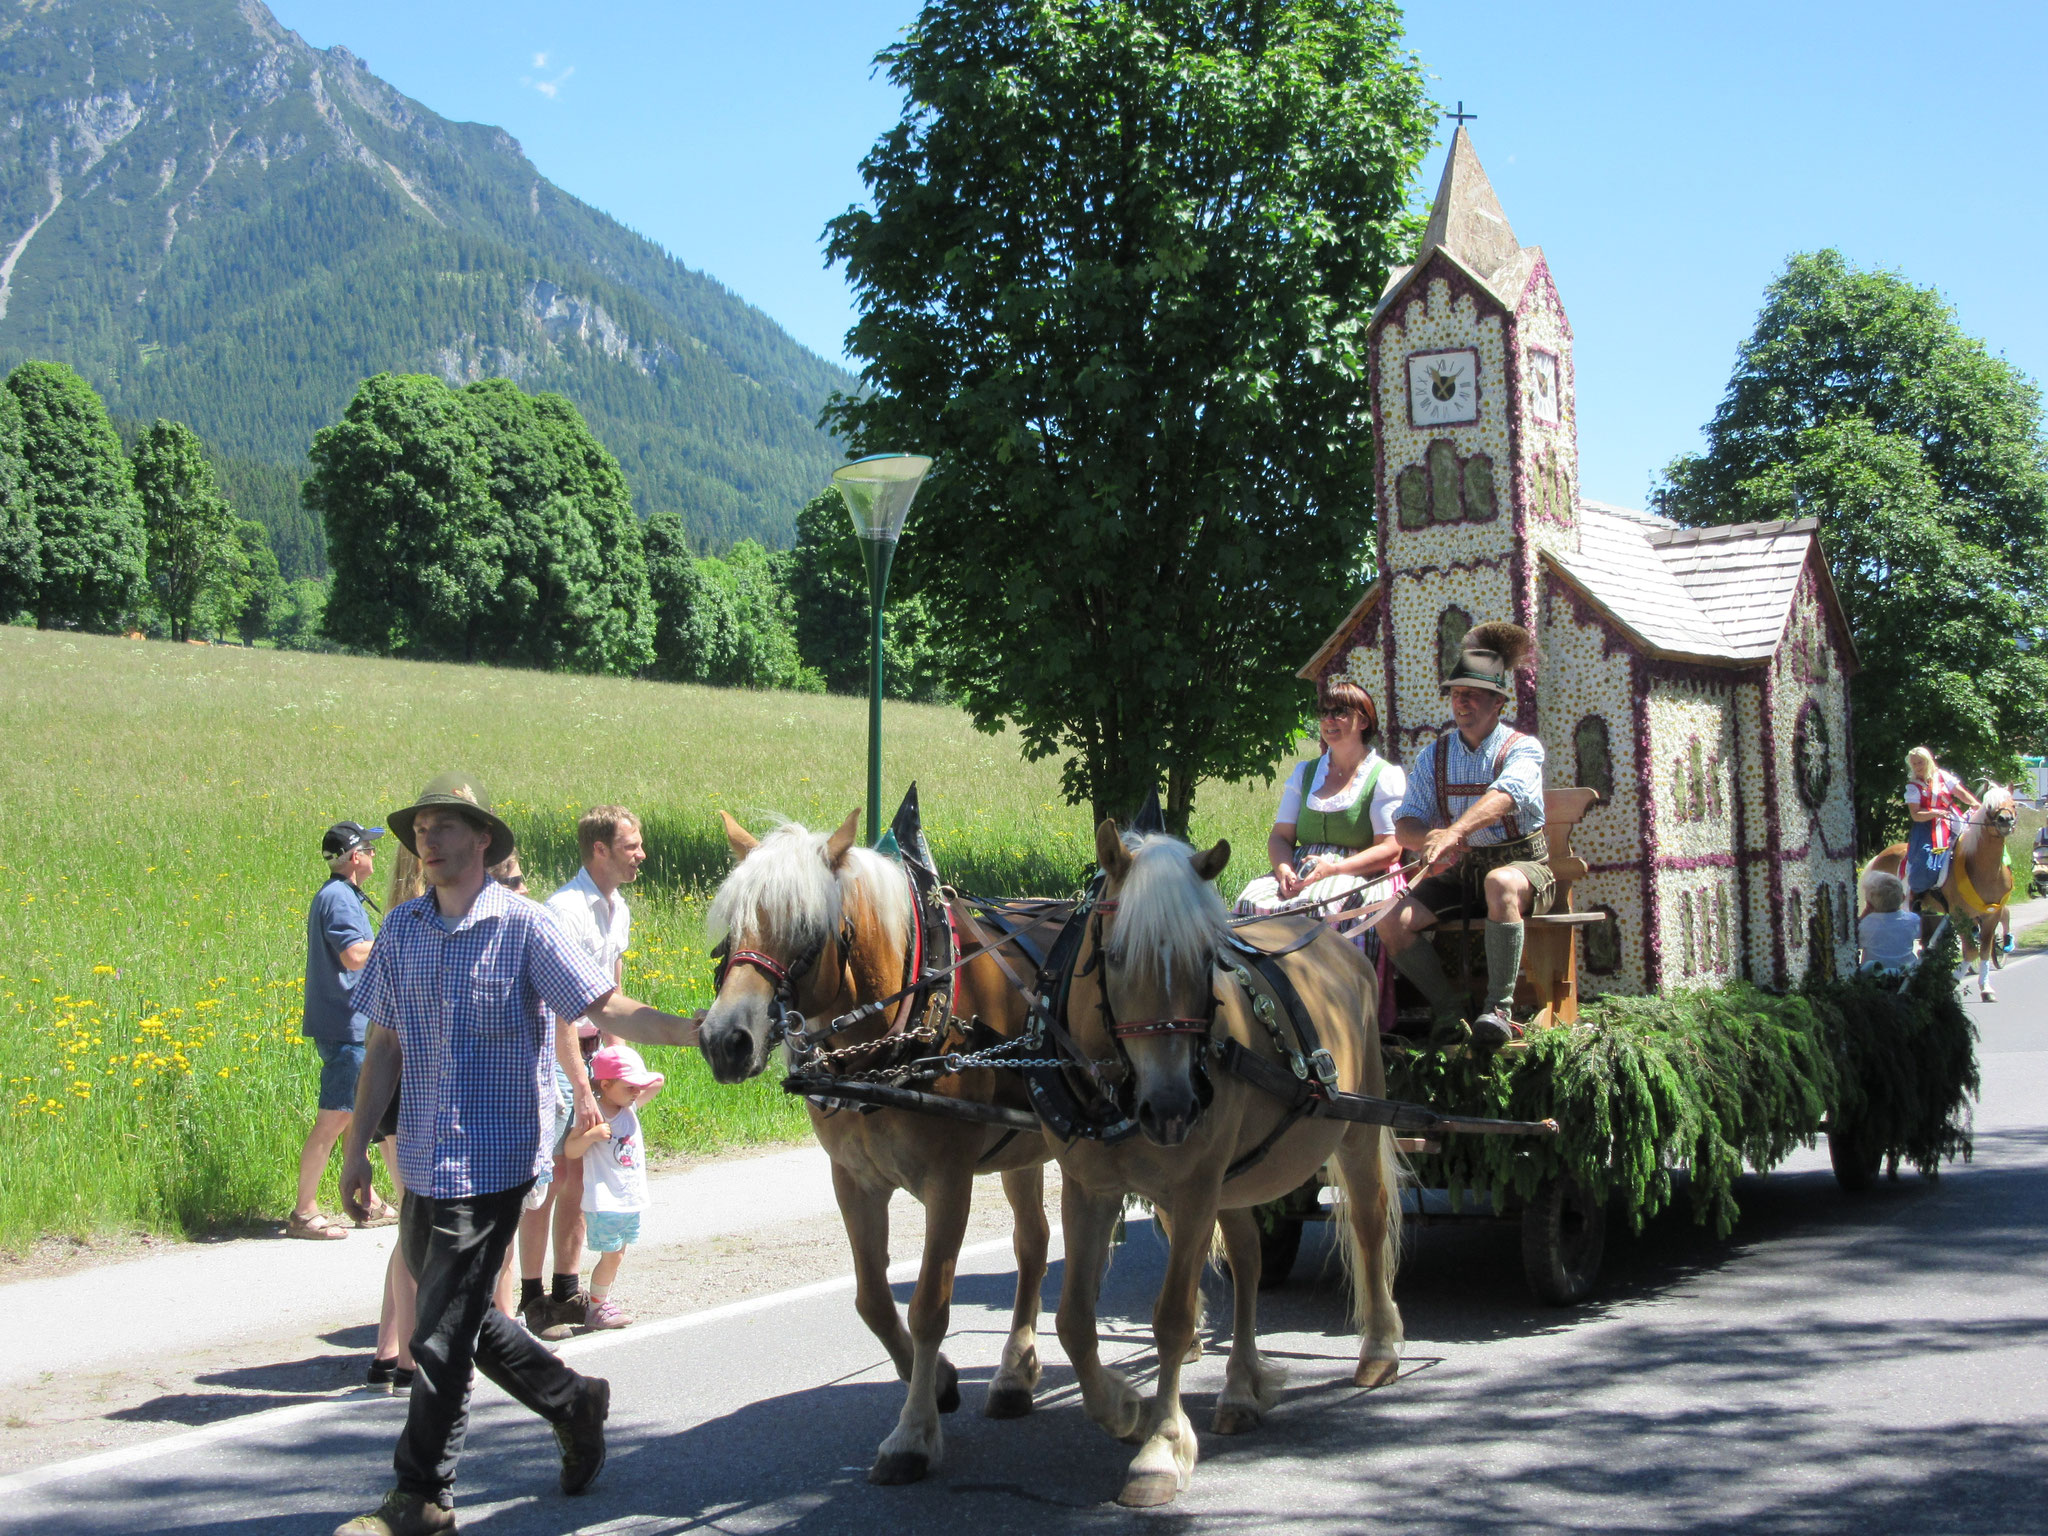 Ramsau Fruhlingfest in June